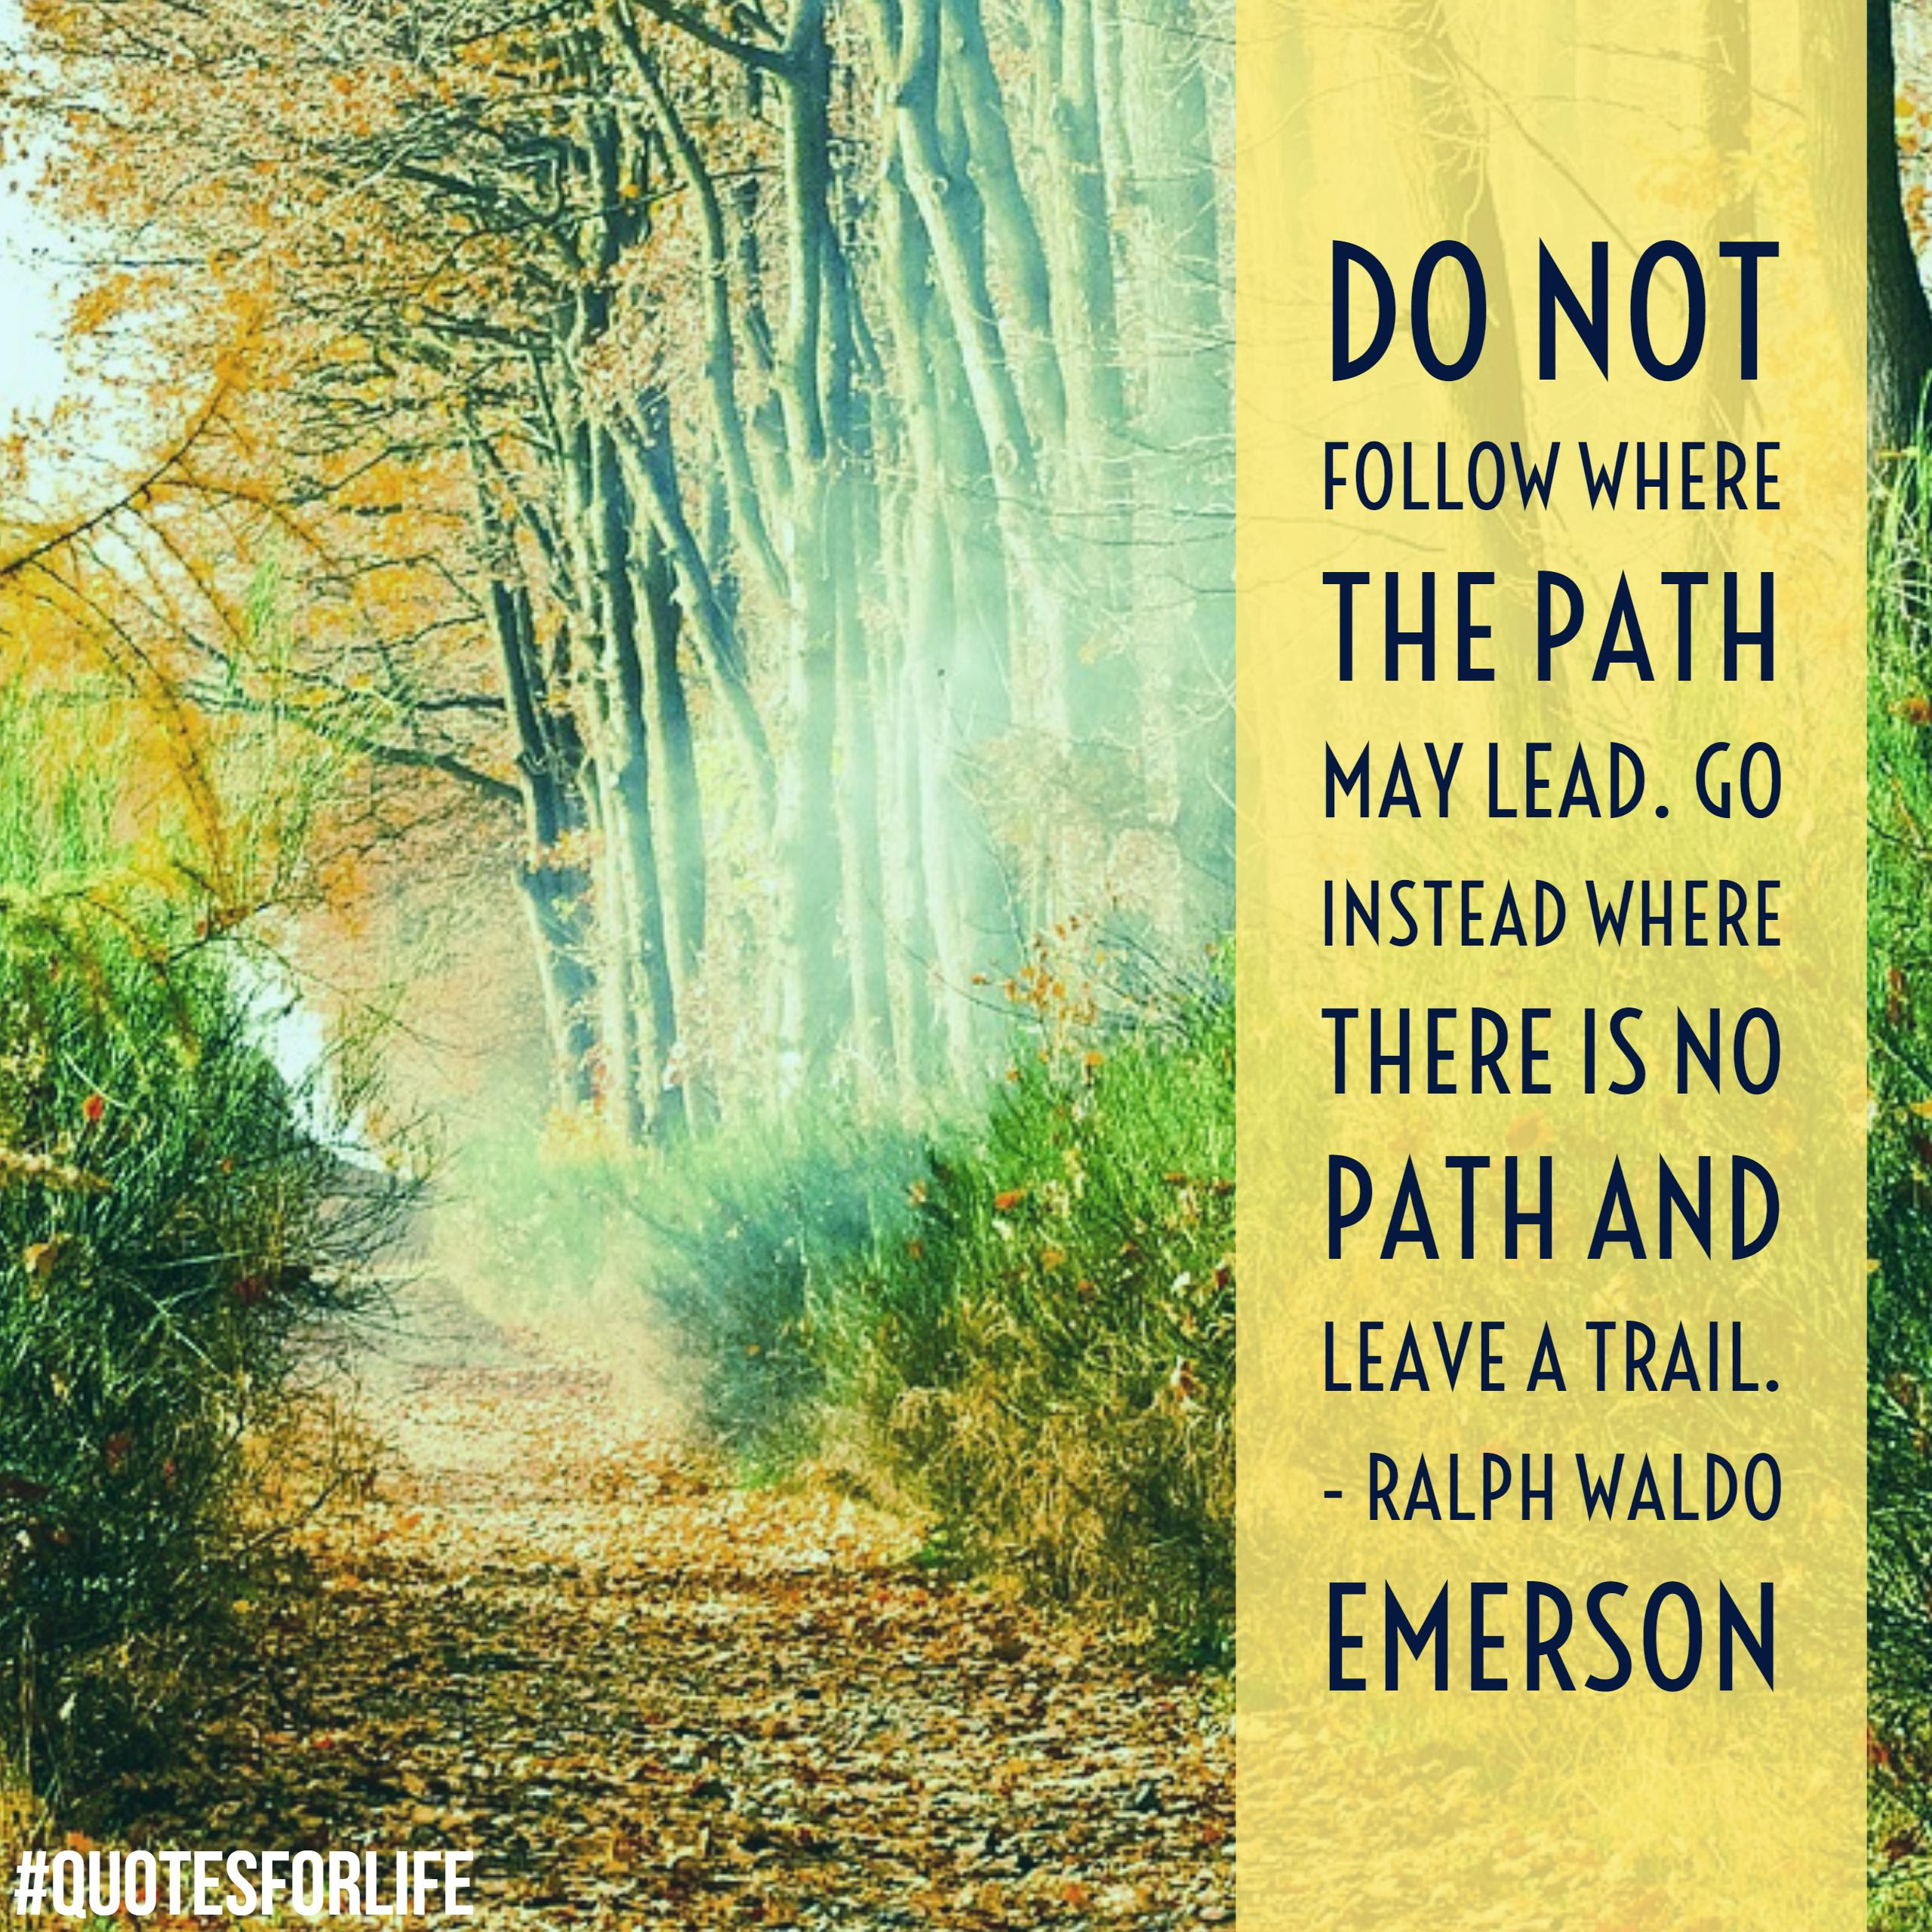 Ralph Waldo Emerson Quotes Quotes For Life